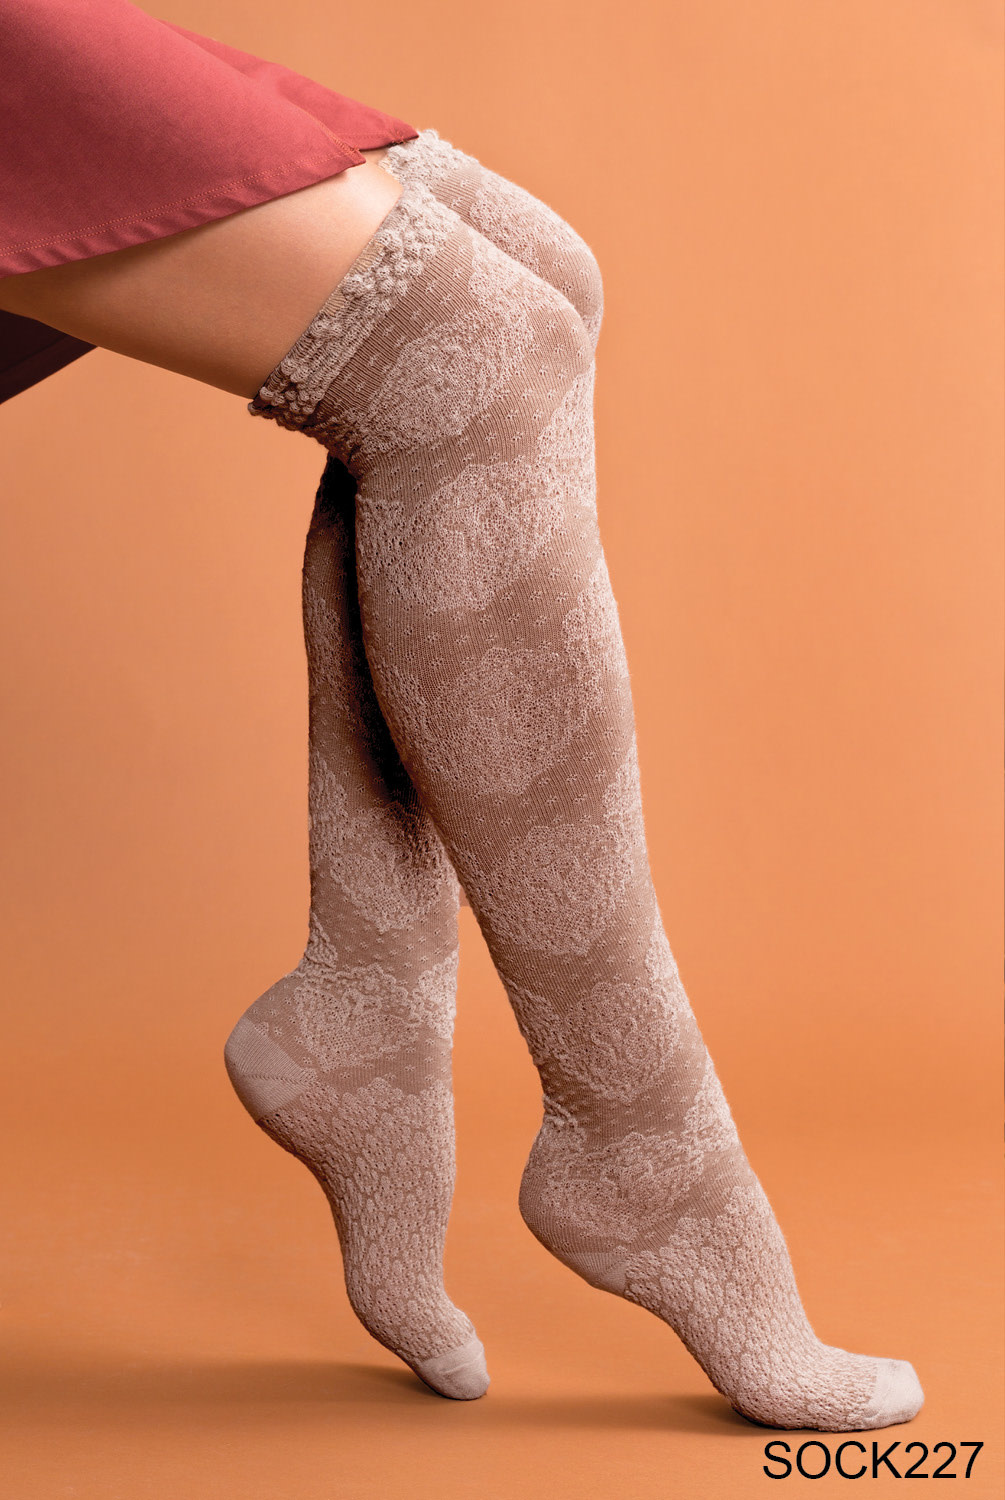 Simply Noelle Art Deco Boot Socks (4-Colors) 75% Off Now $4.99